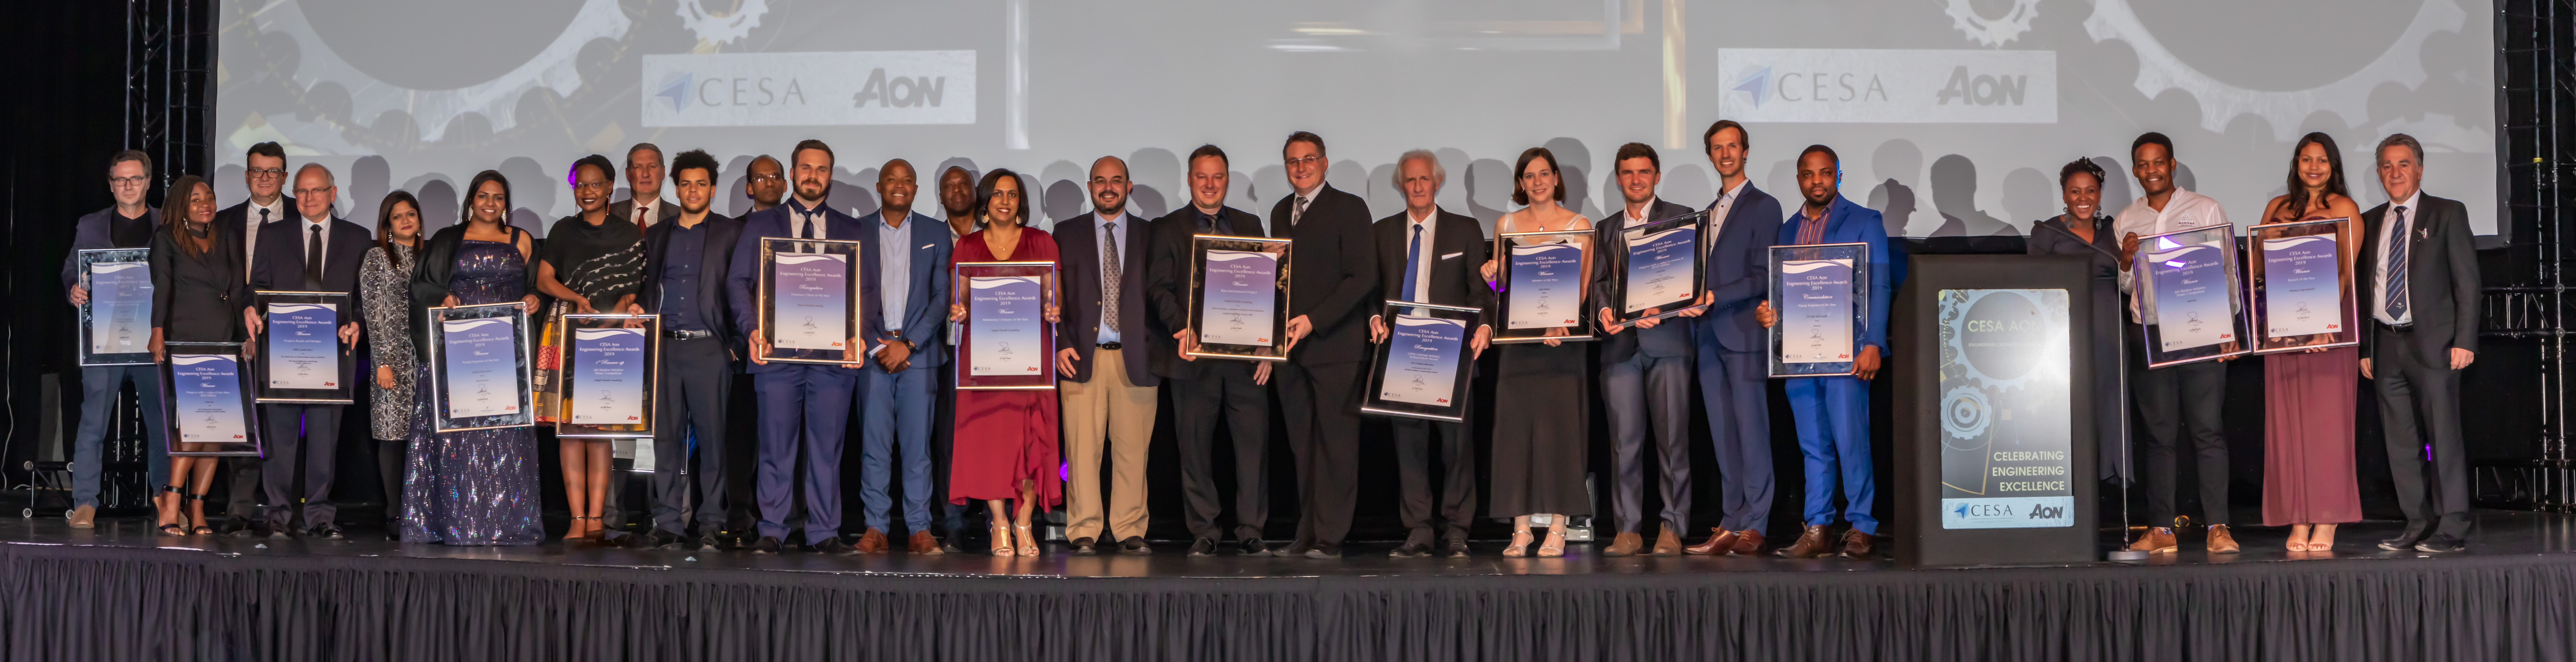 South African engineering excellence celebrated   Credible